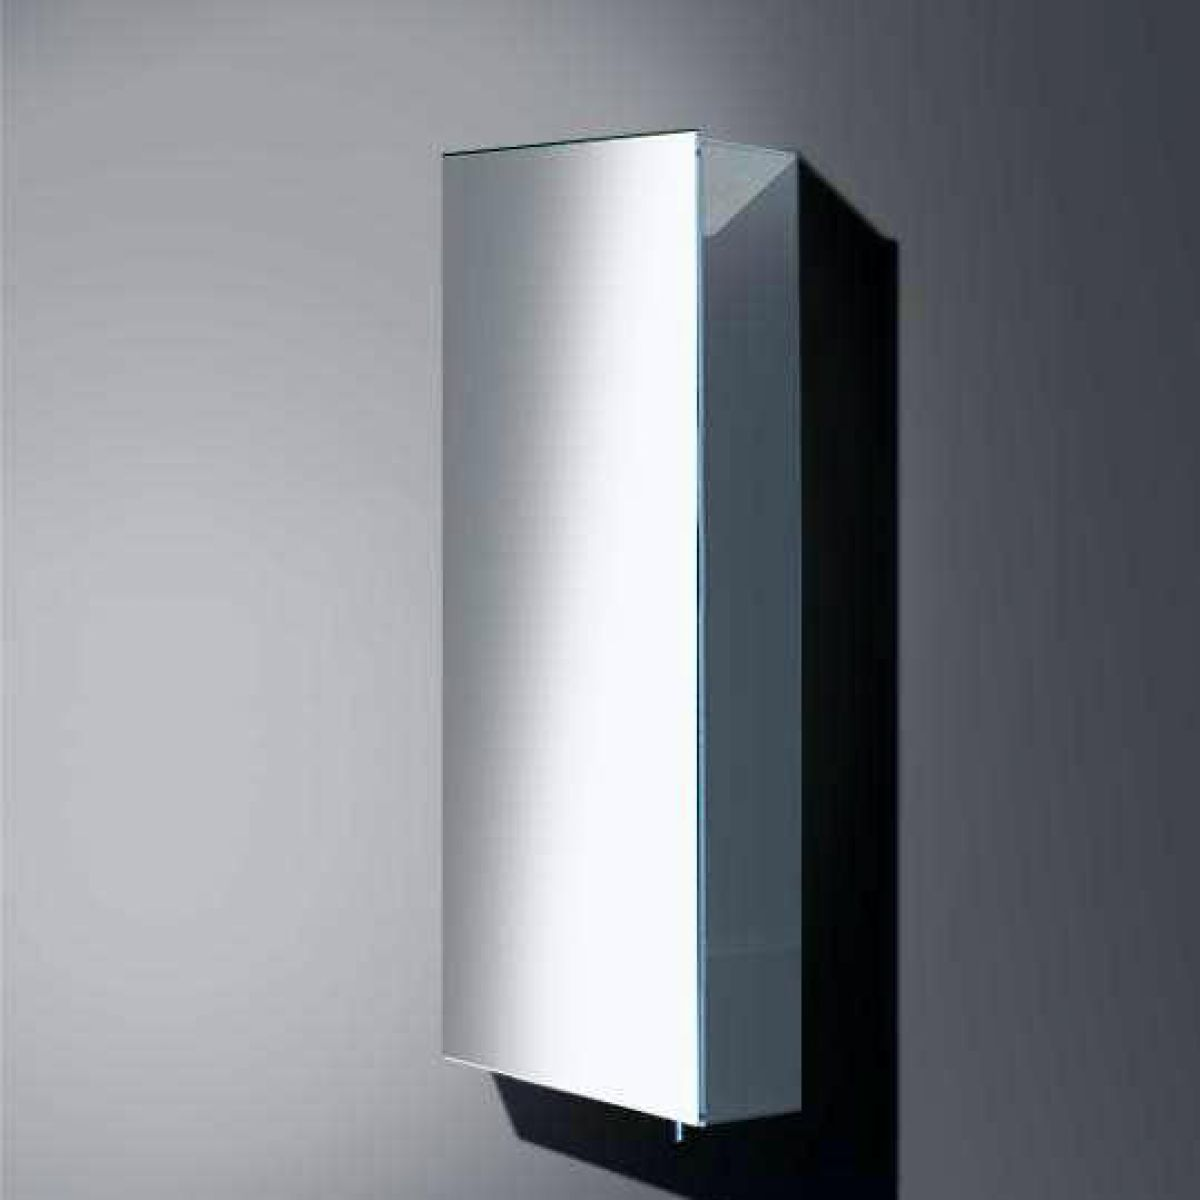 Keuco Royal 30 Bathroom Mirror Cabinet Uk Bathrooms